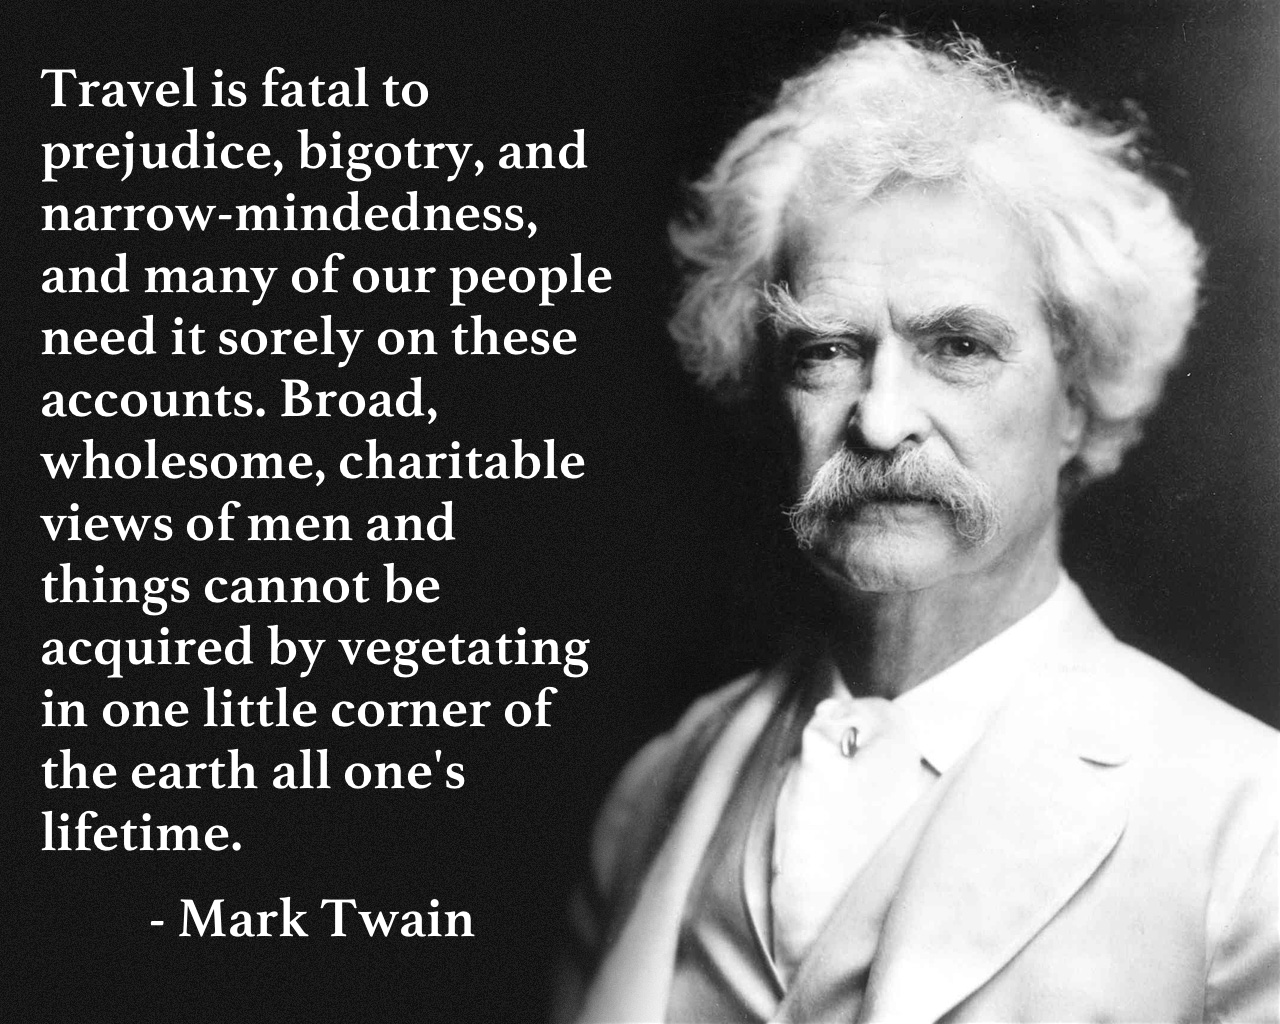 Mark Twain Quotes The Best Of Mark Twain's Travel Quotes  Snarky Nomad